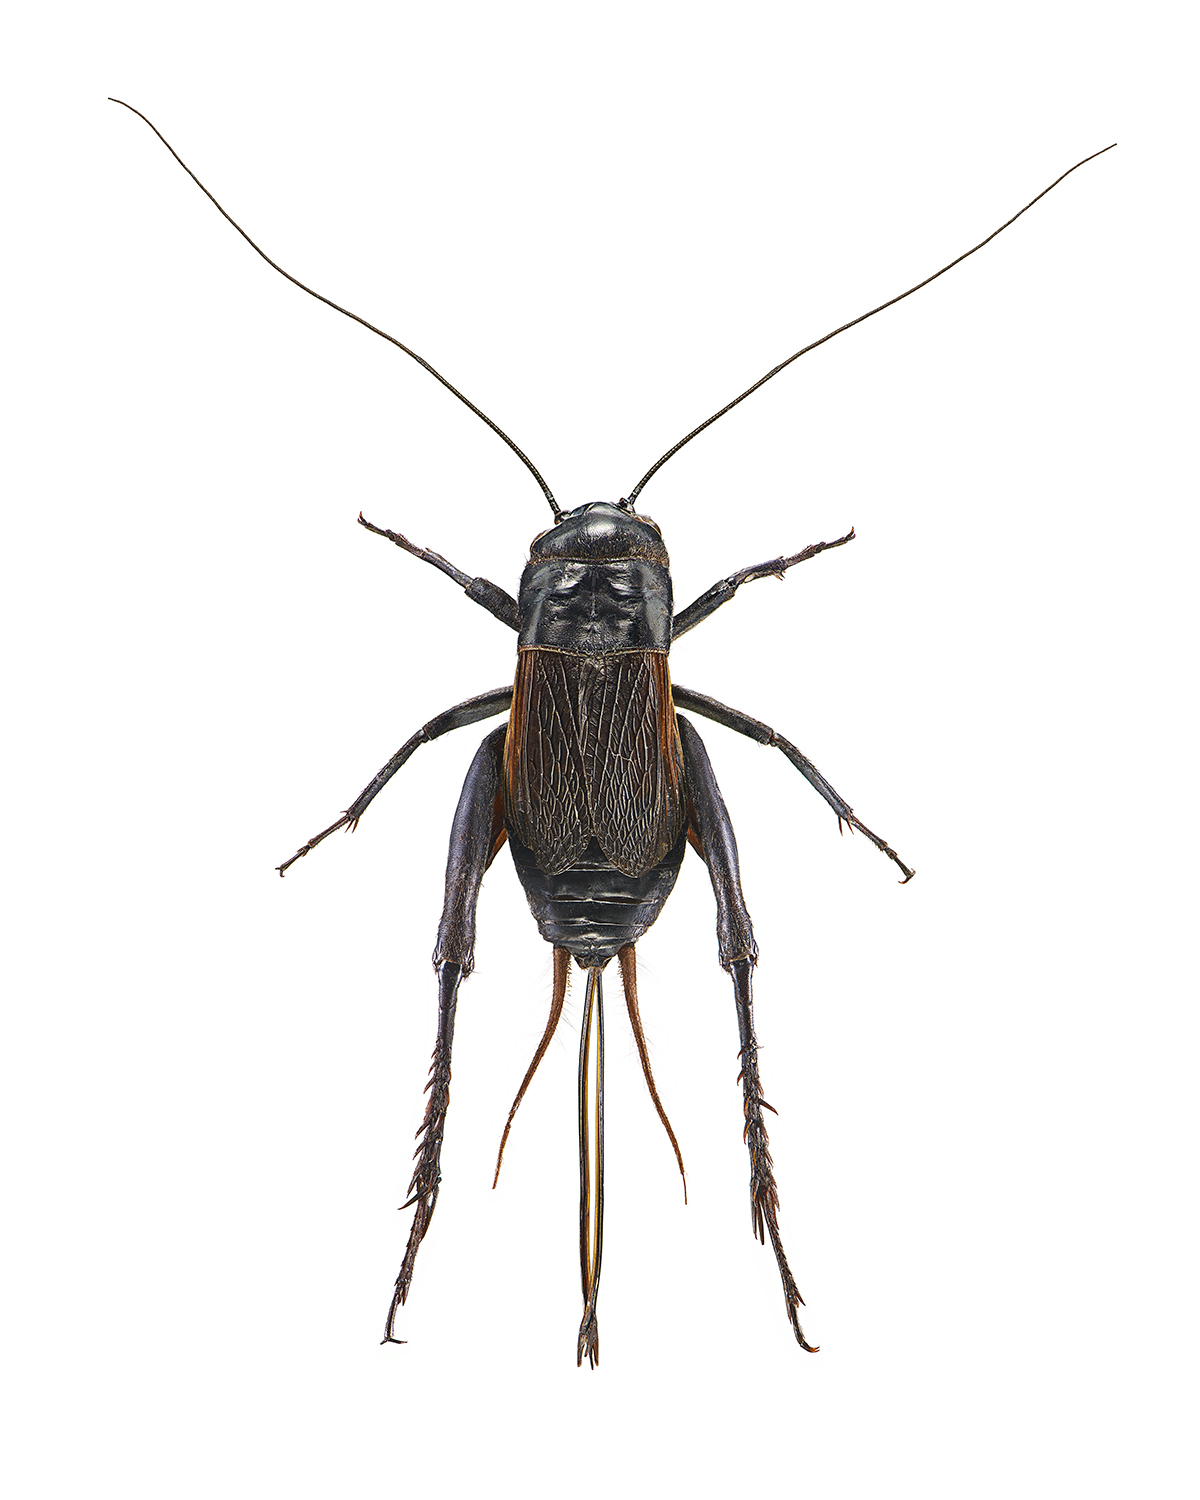 Field Cricket, Gryllus spp.